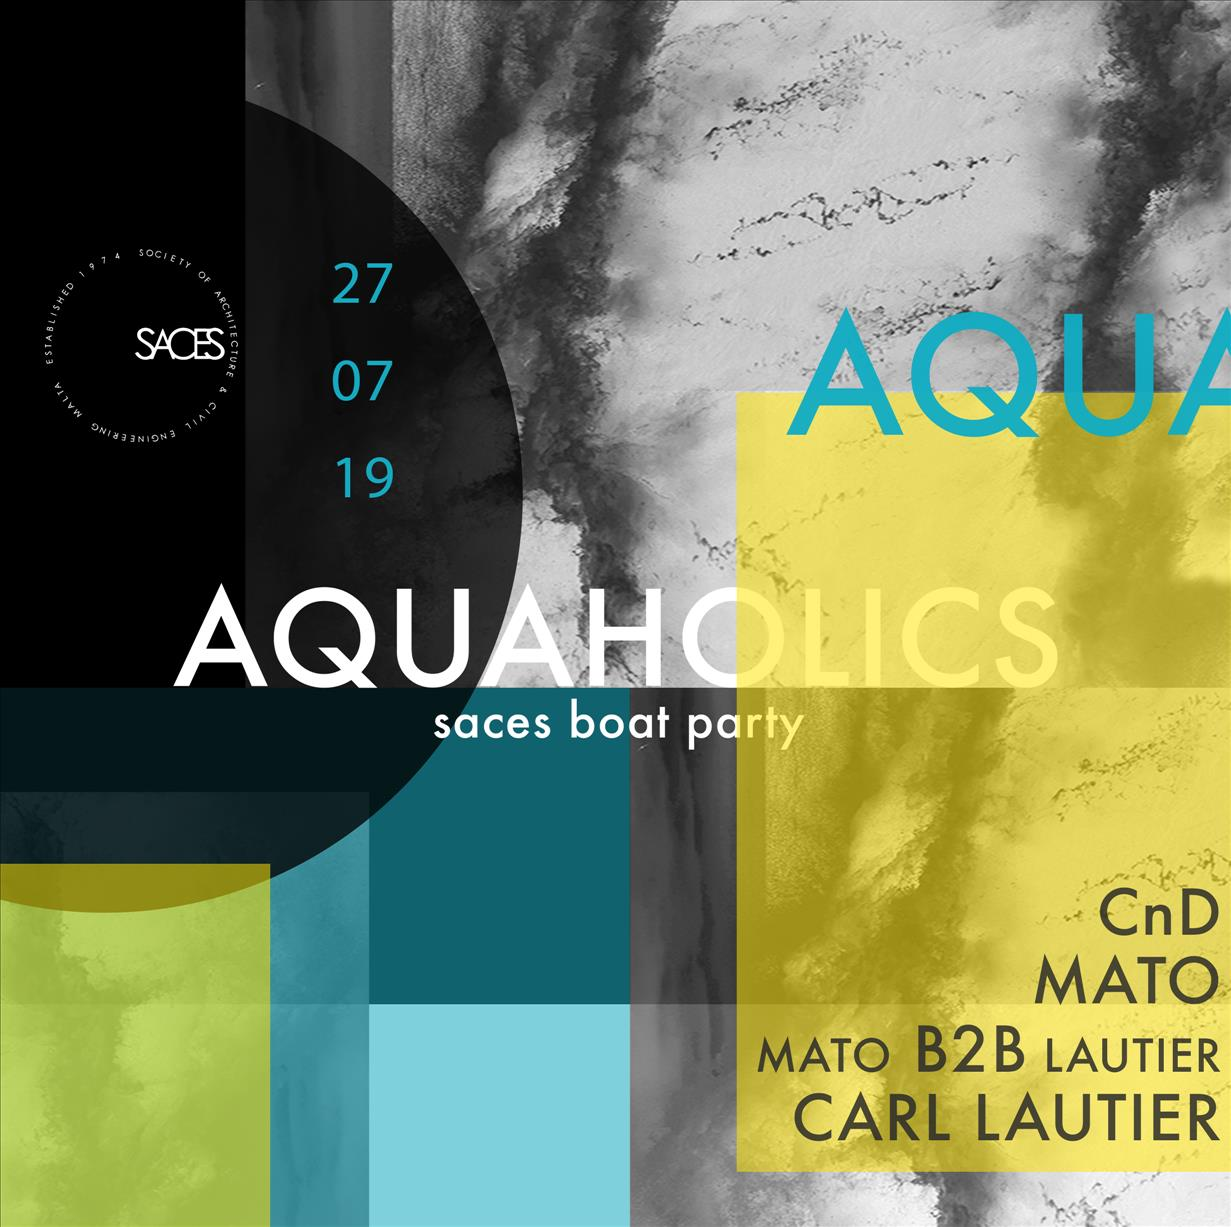 Aquaholics flyer